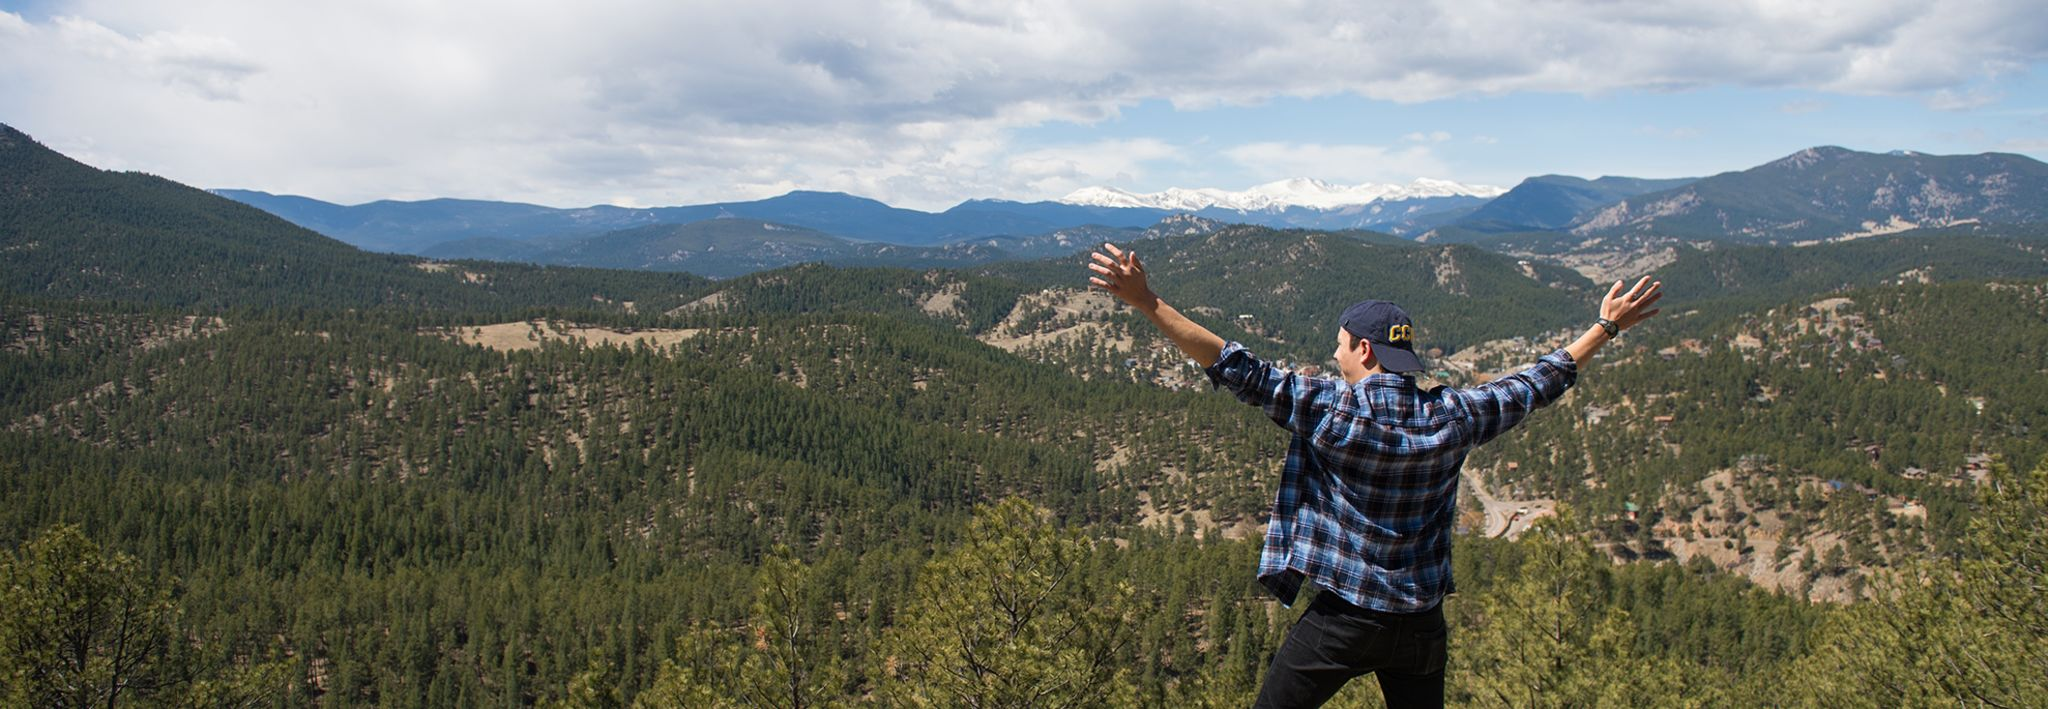 A CCU student in the mountains of Colorado.